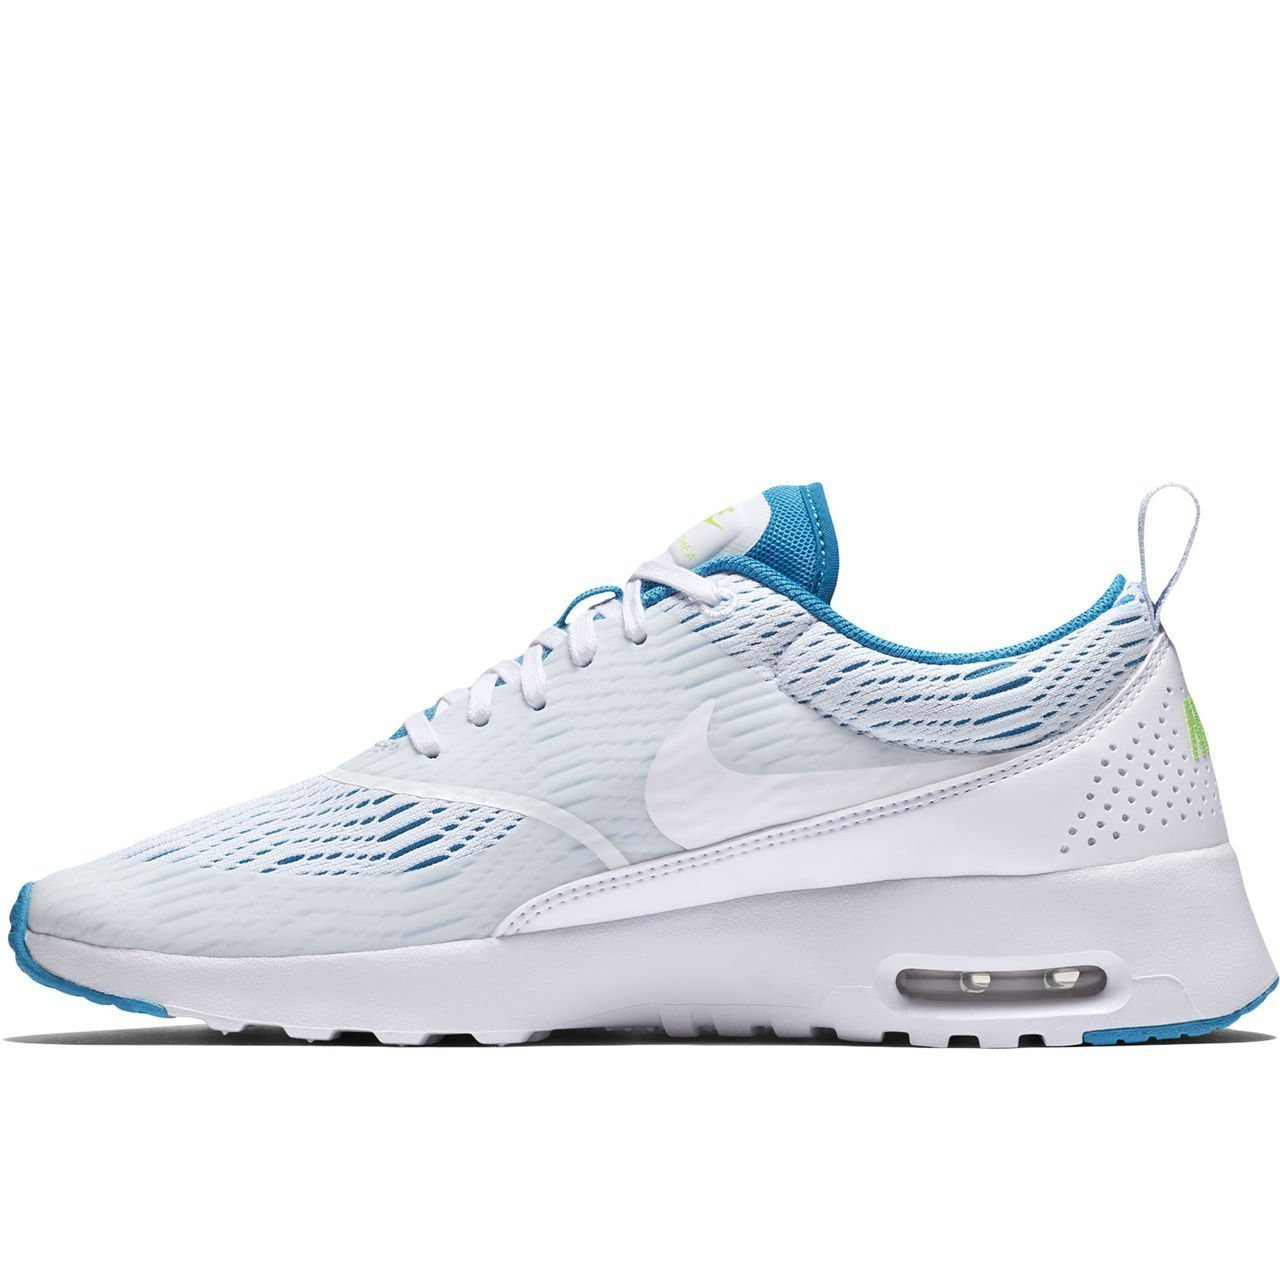 109e61ce86 Galleon - Nike Womens Air Max Thea EM Running Shoes 833887-100, US Women 10